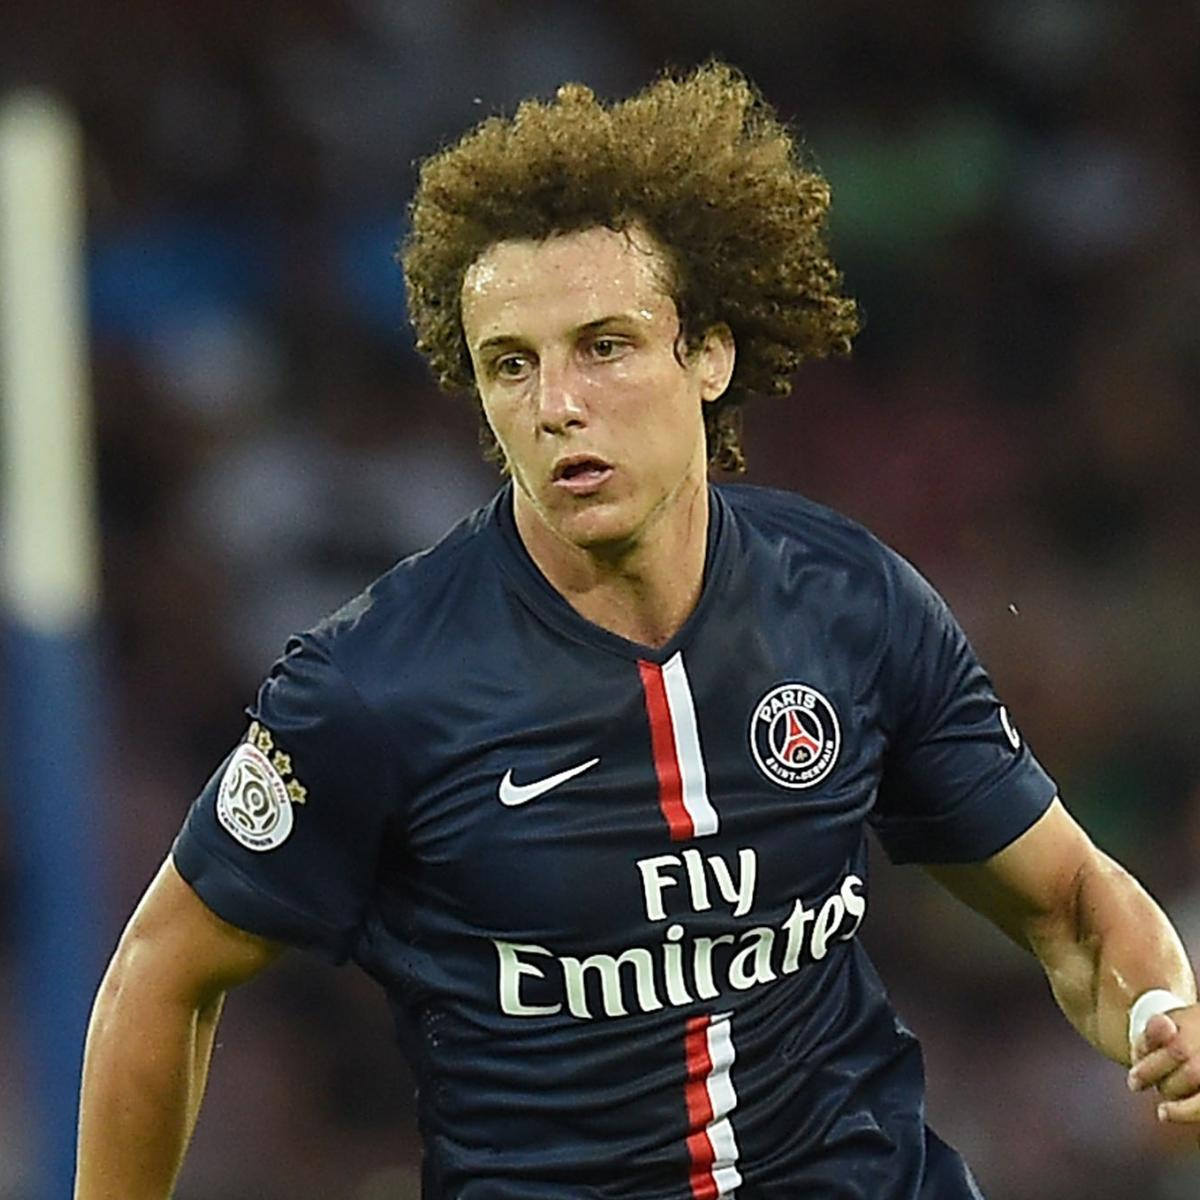 Psg Can Get Revenge On Chelsea In Champions League Last 16: Why David Luiz Will Be A Huge Player For PSG In The 2014